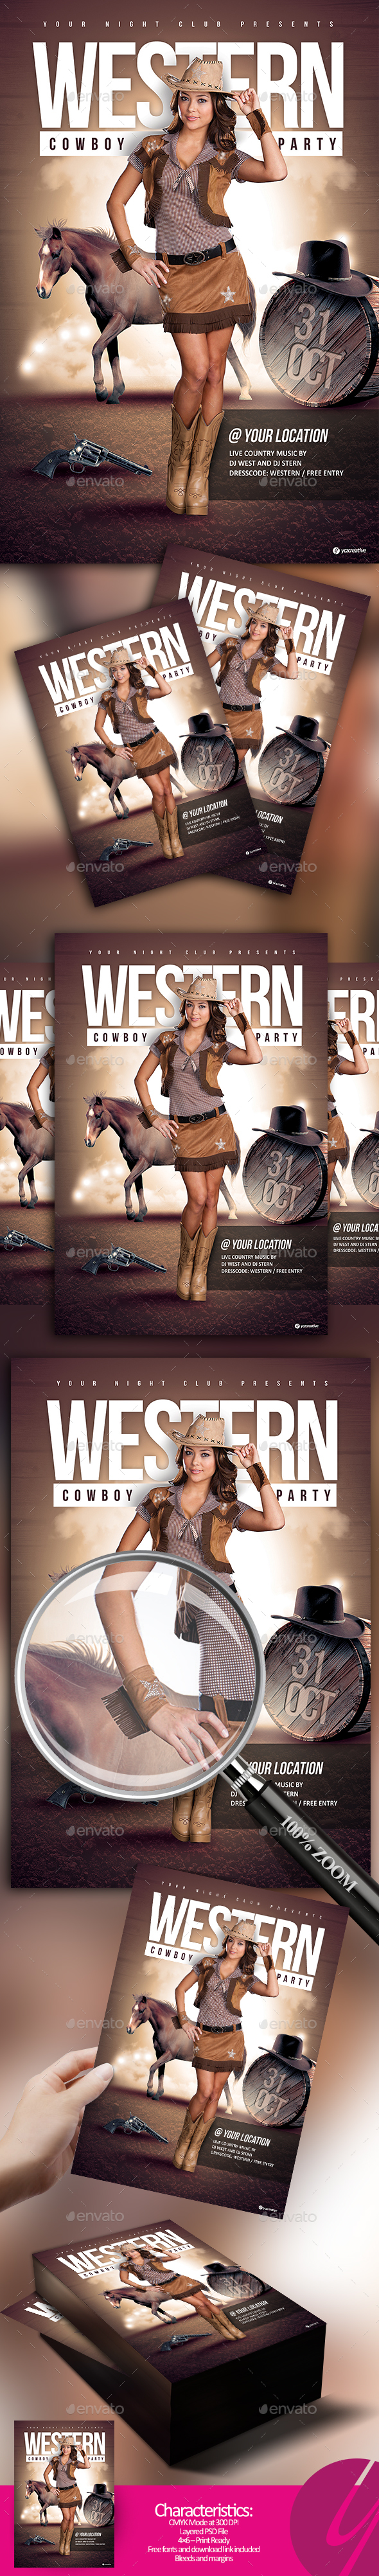 Western Cowboy Party - Clubs & Parties Events